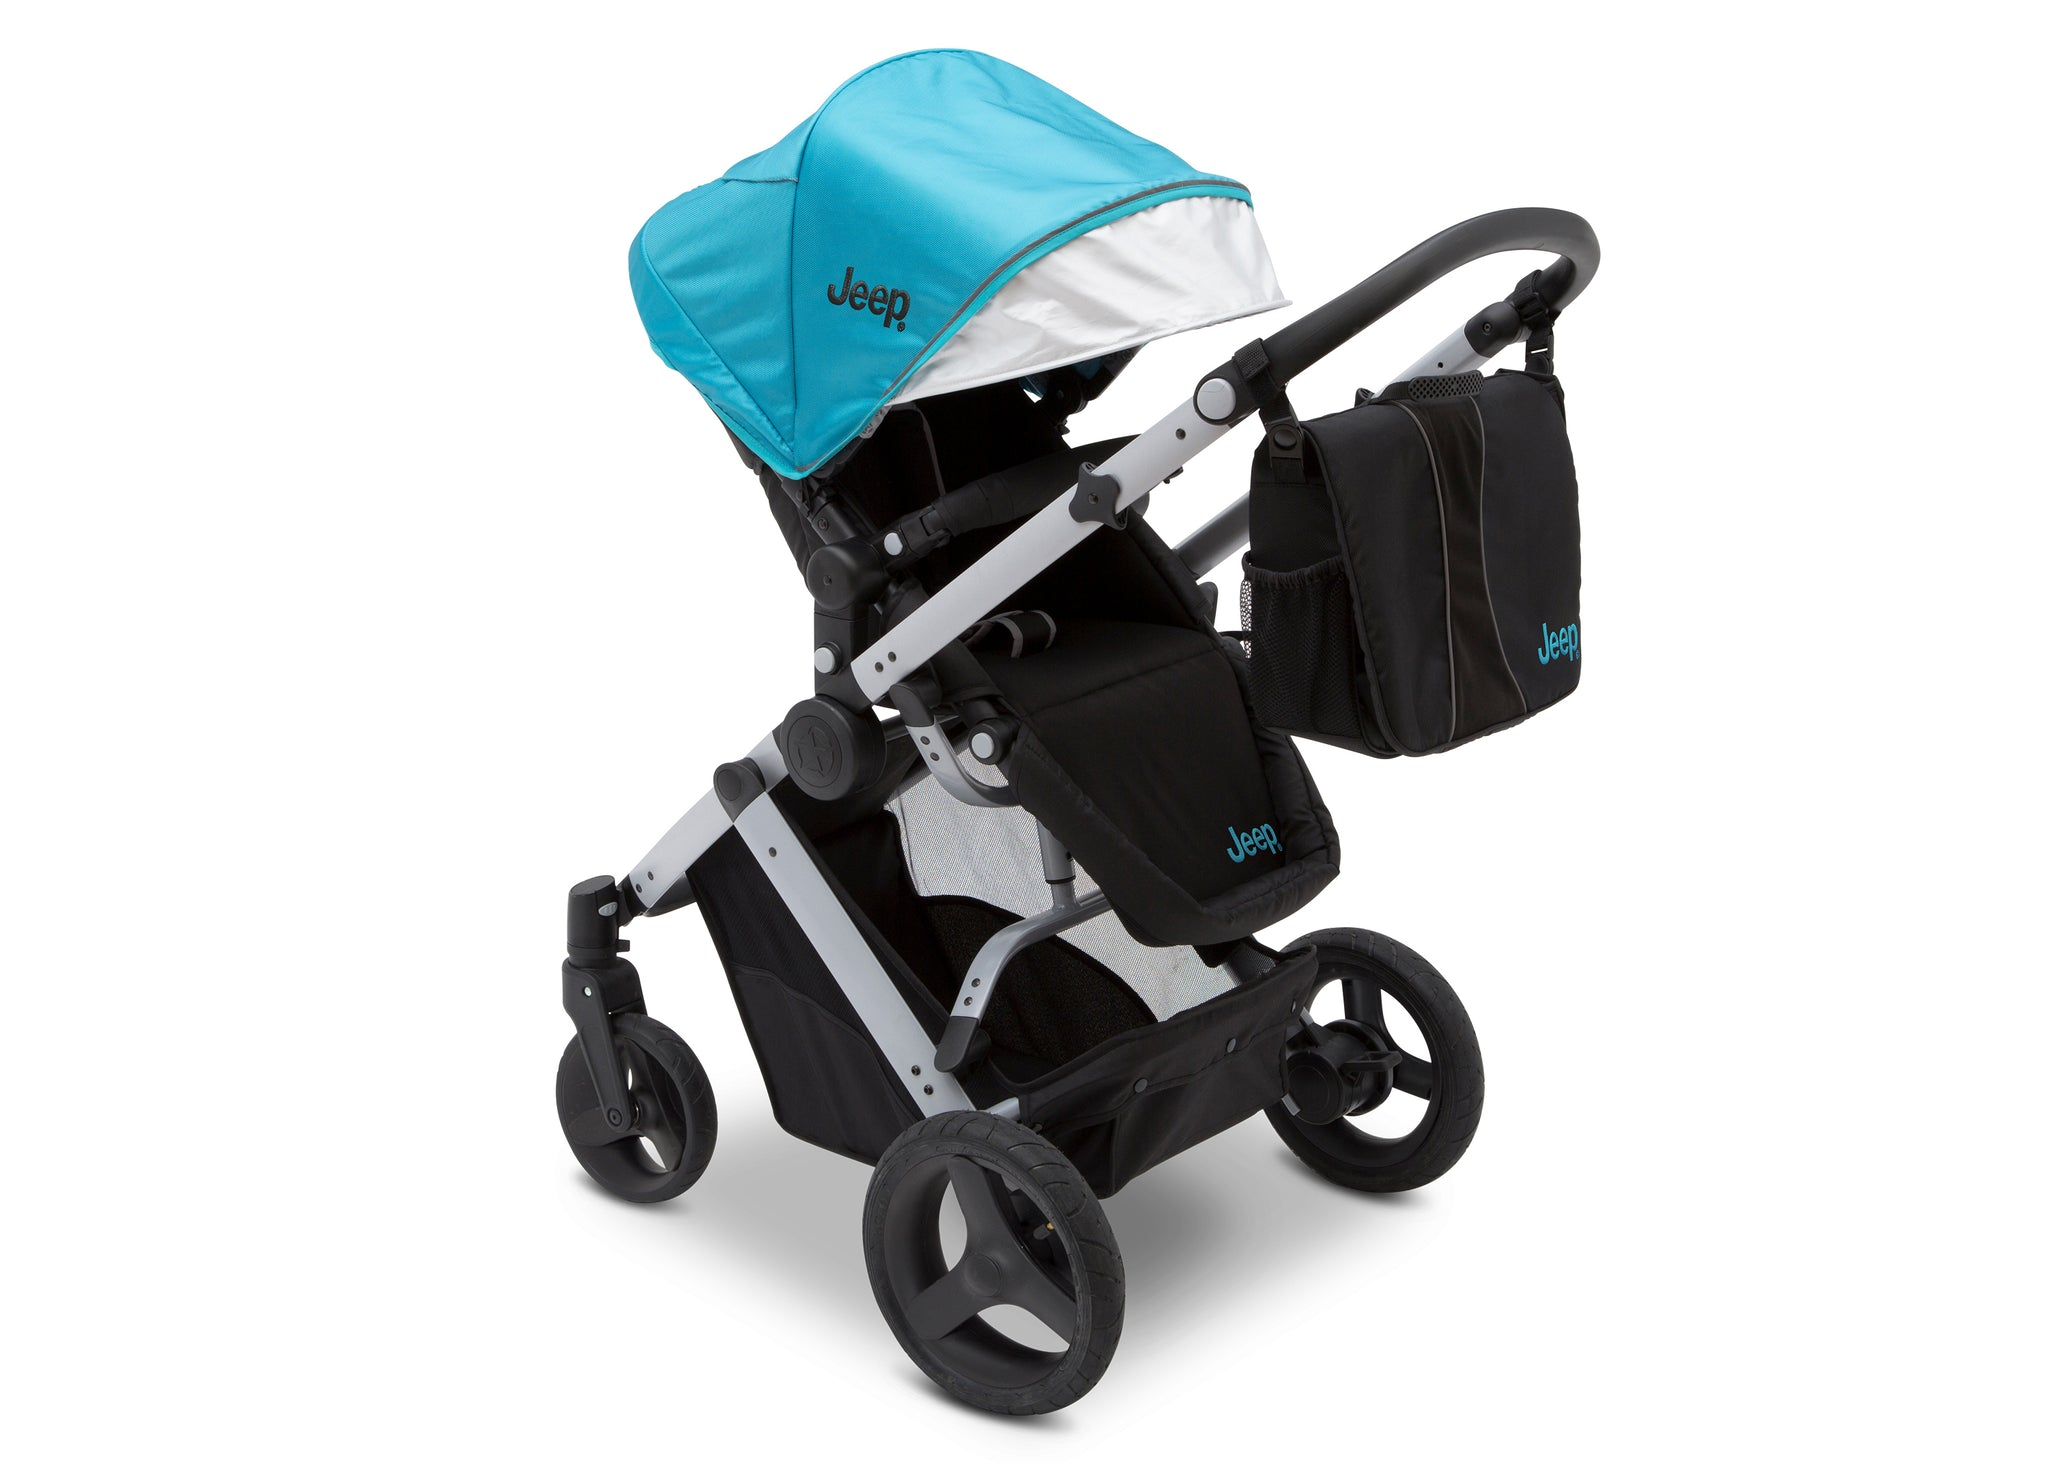 Jeep Brand Sport Utility All-Terrain Stroller by Delta Children, Aqua on Silver (2403), with detachable parent organizer